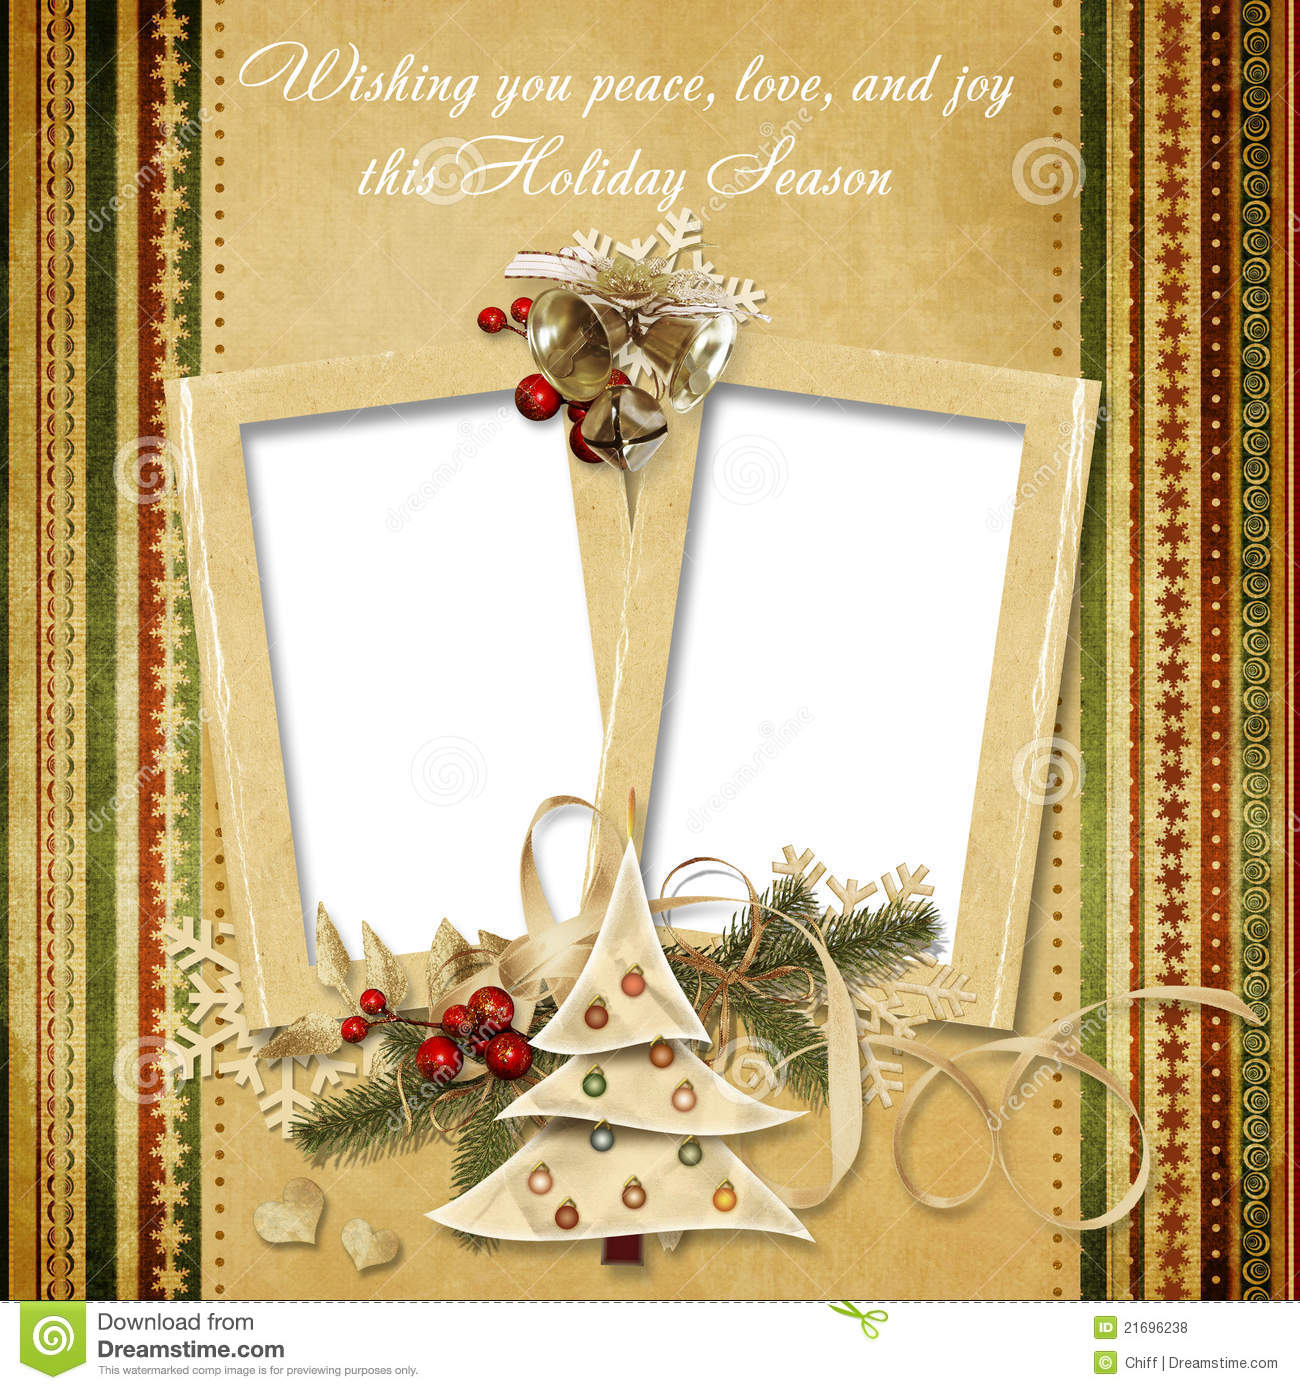 Christmas Vintage Greeting Frame With The Wishes Royalty Free Stock Photos Image 21696238